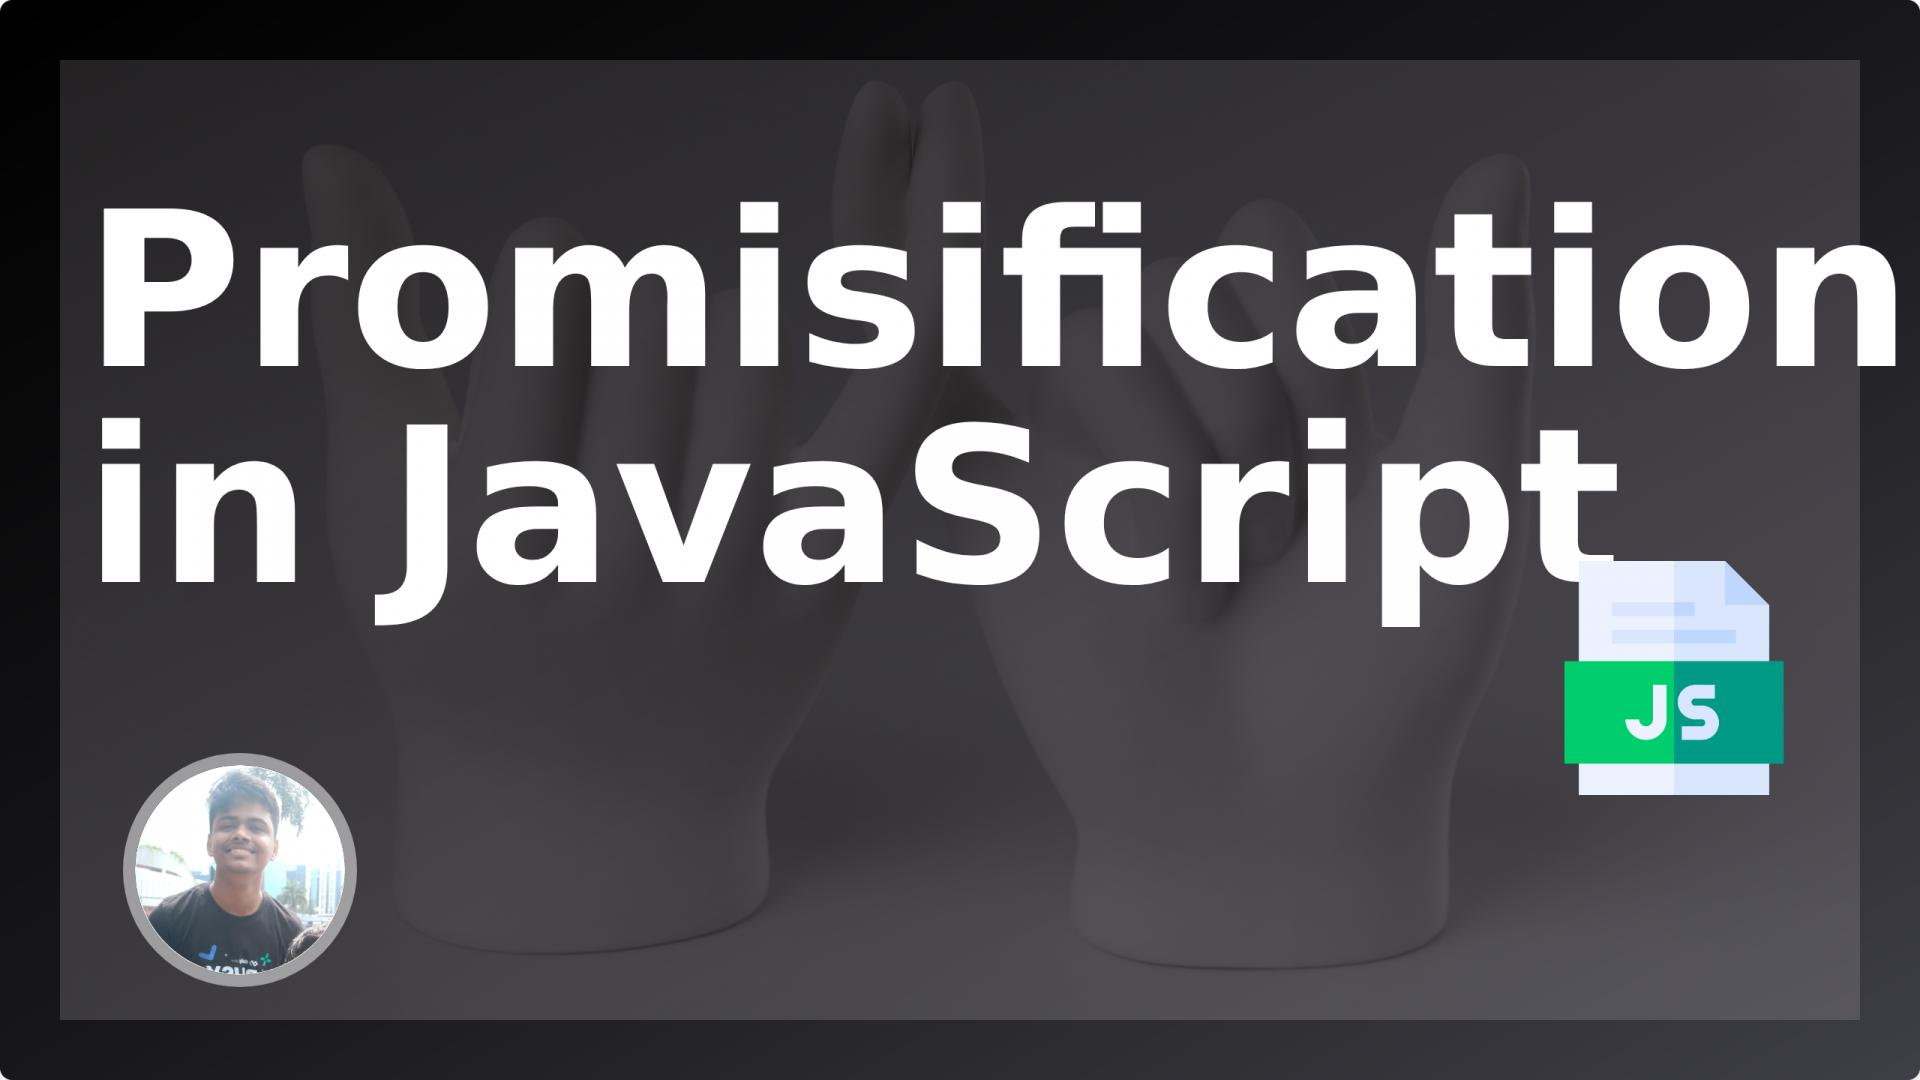 What is Promisification in JavaScript? A brief guide